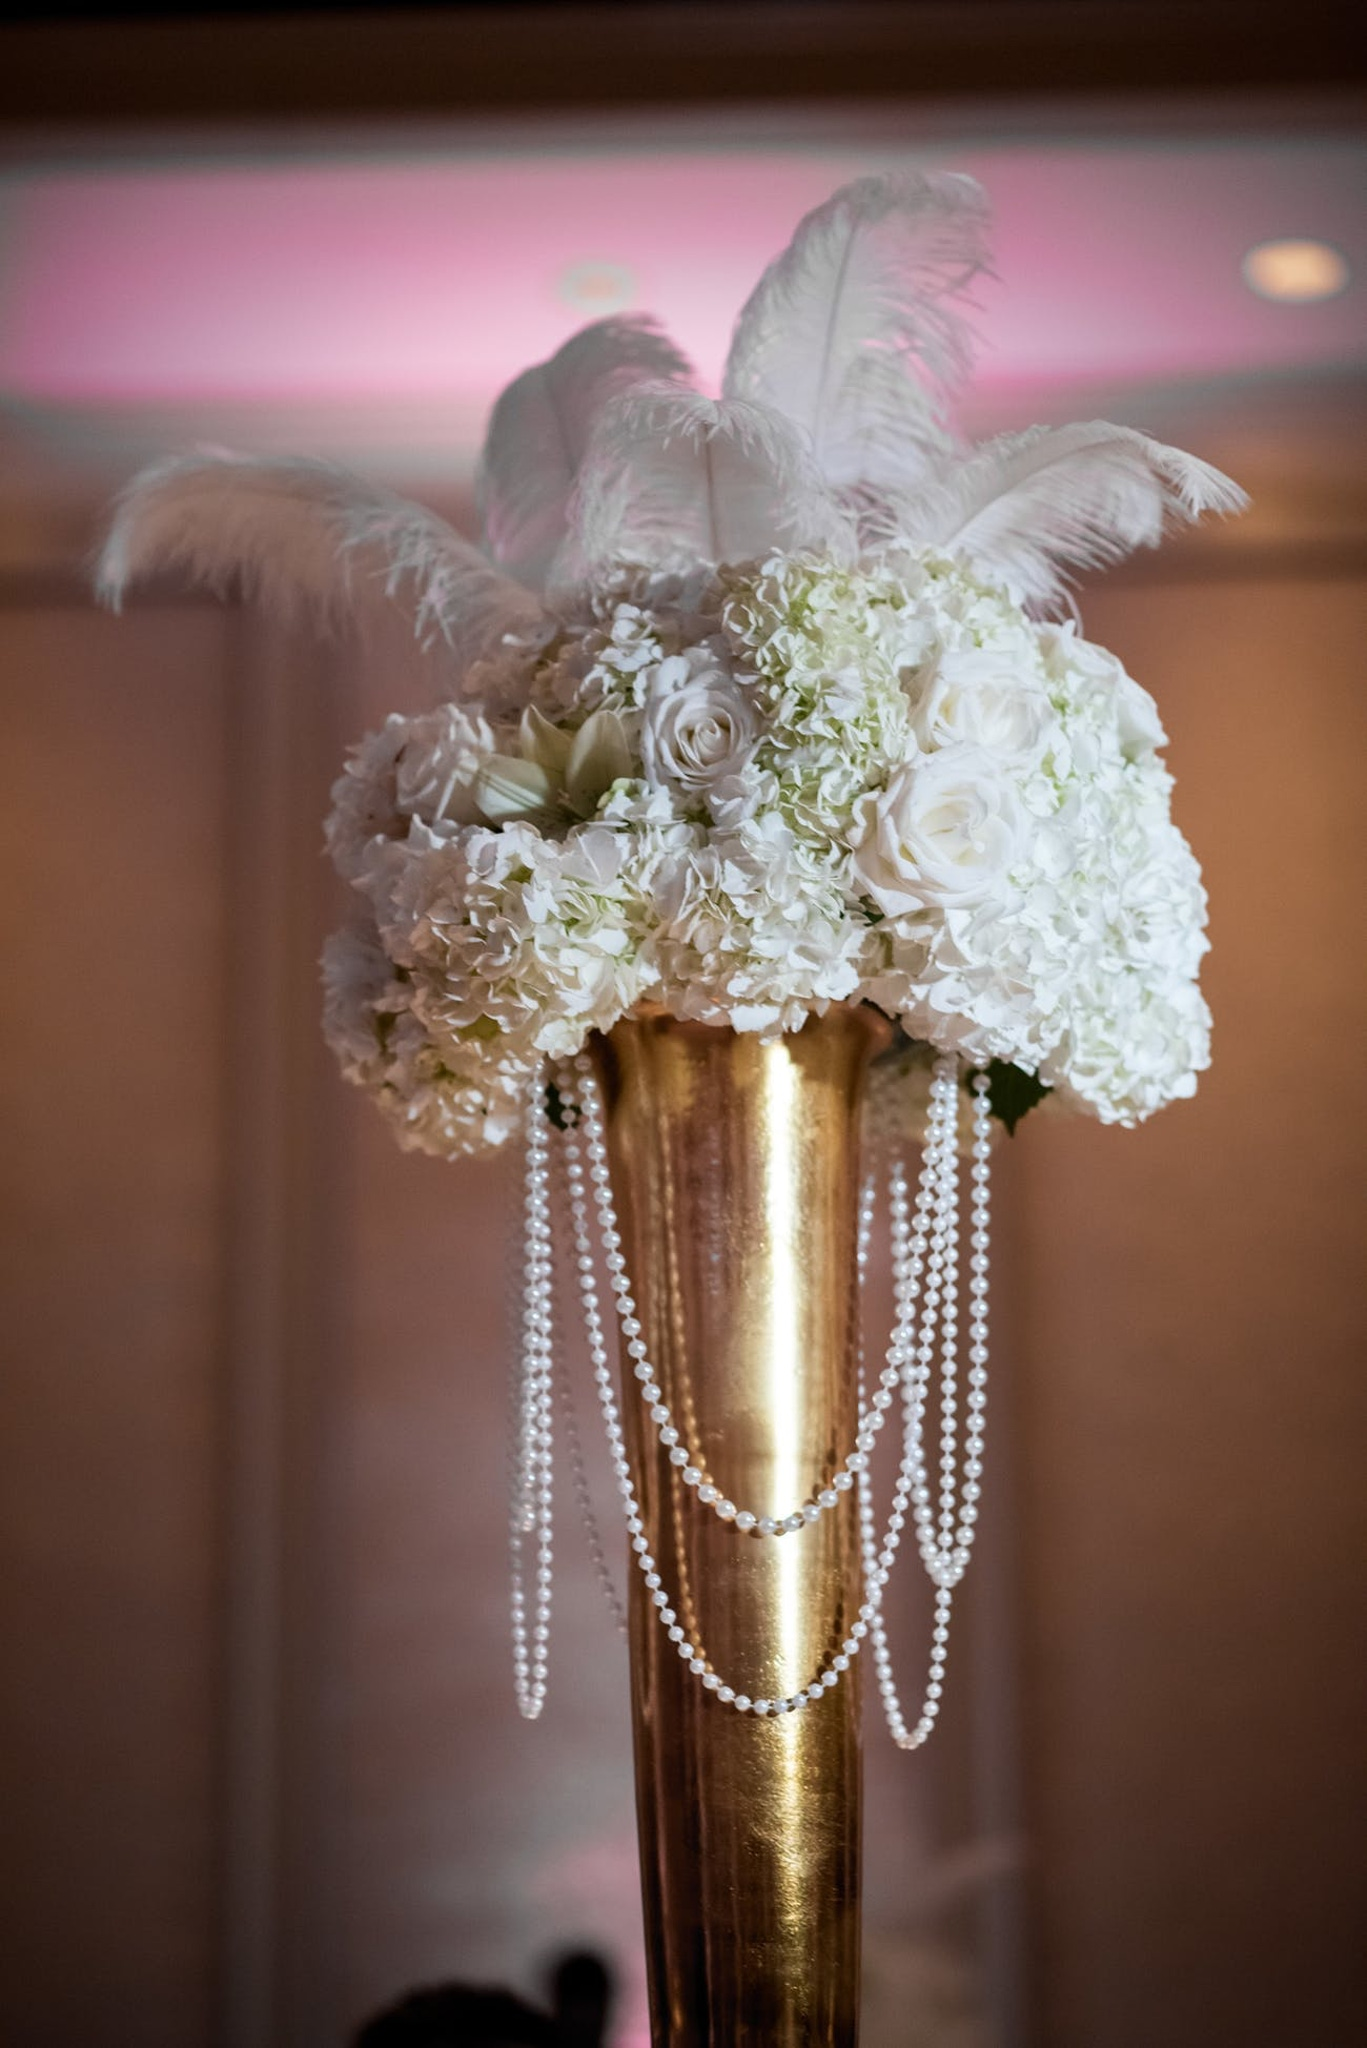 gatsby themed floral centerpiece with feathers and pearls at a new year's eve wedding reception